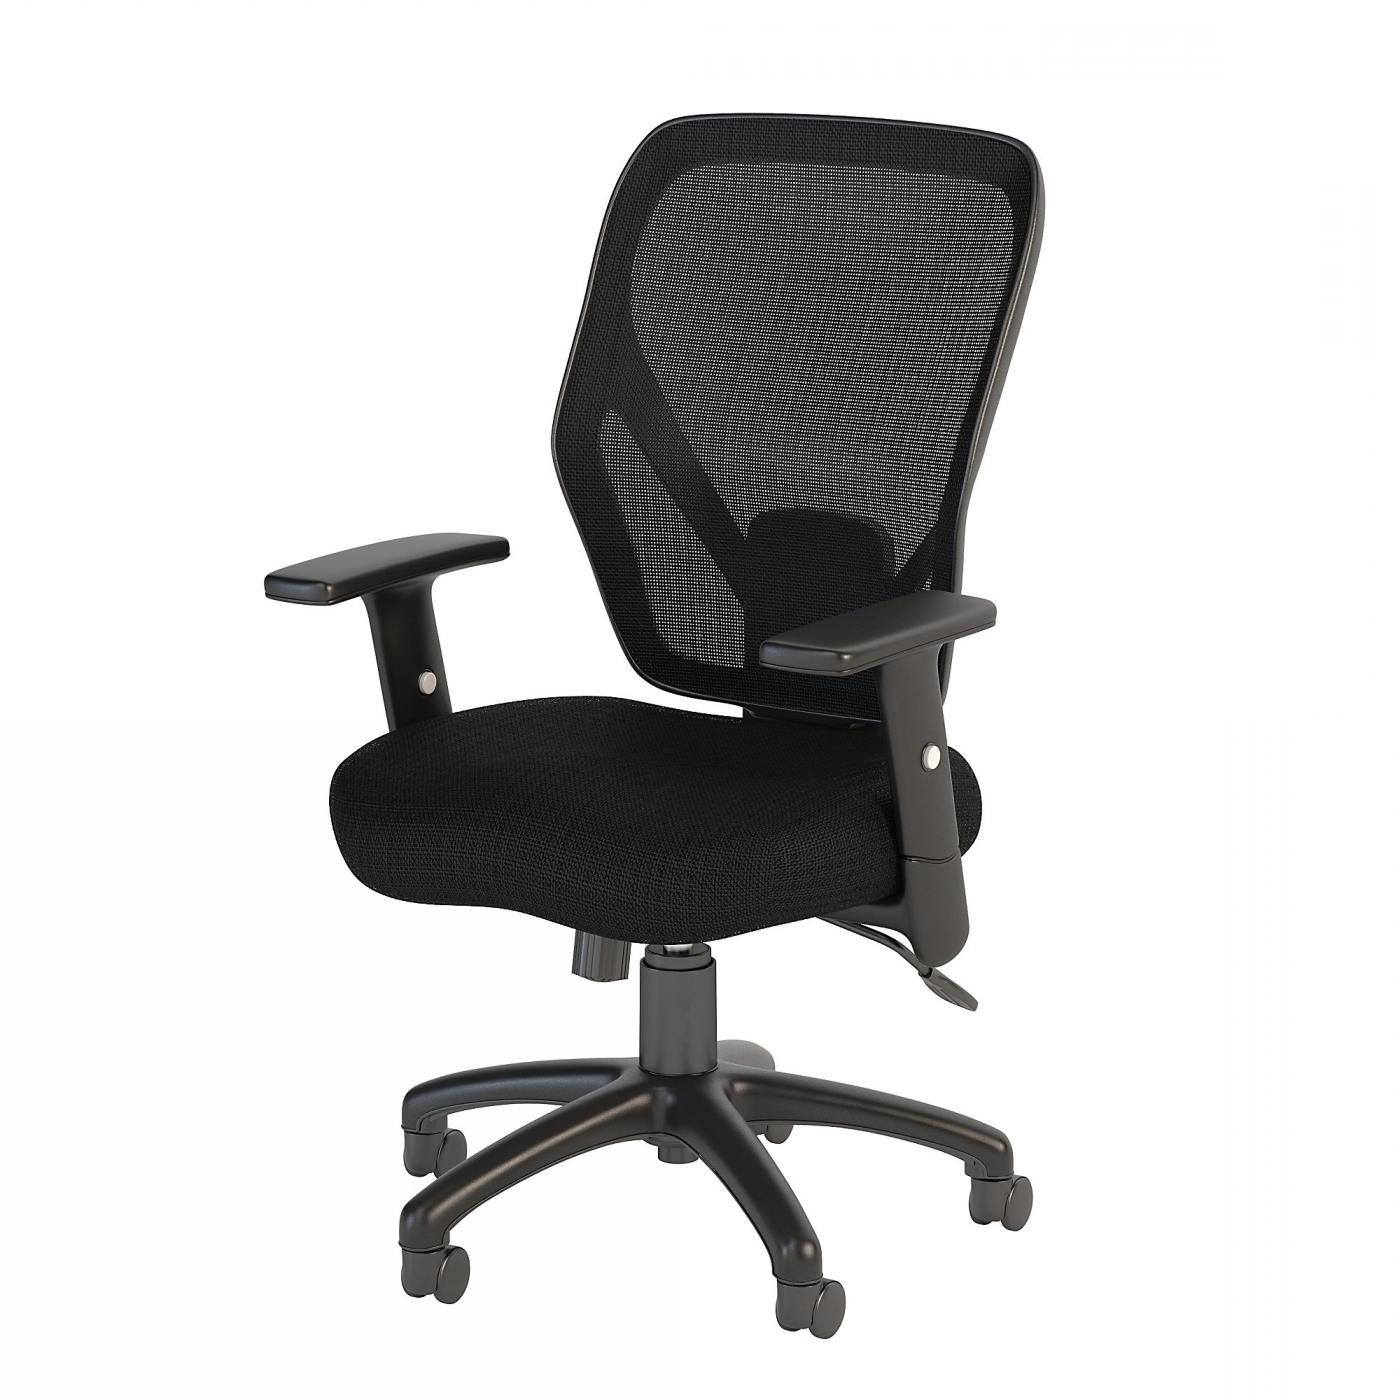 <font color=#c60><b>BUSH BUSINESS FURNITURE ACCORD MESH BACK OFFICE CHAIR. FREE SHIPPING</font></b> </font></b>